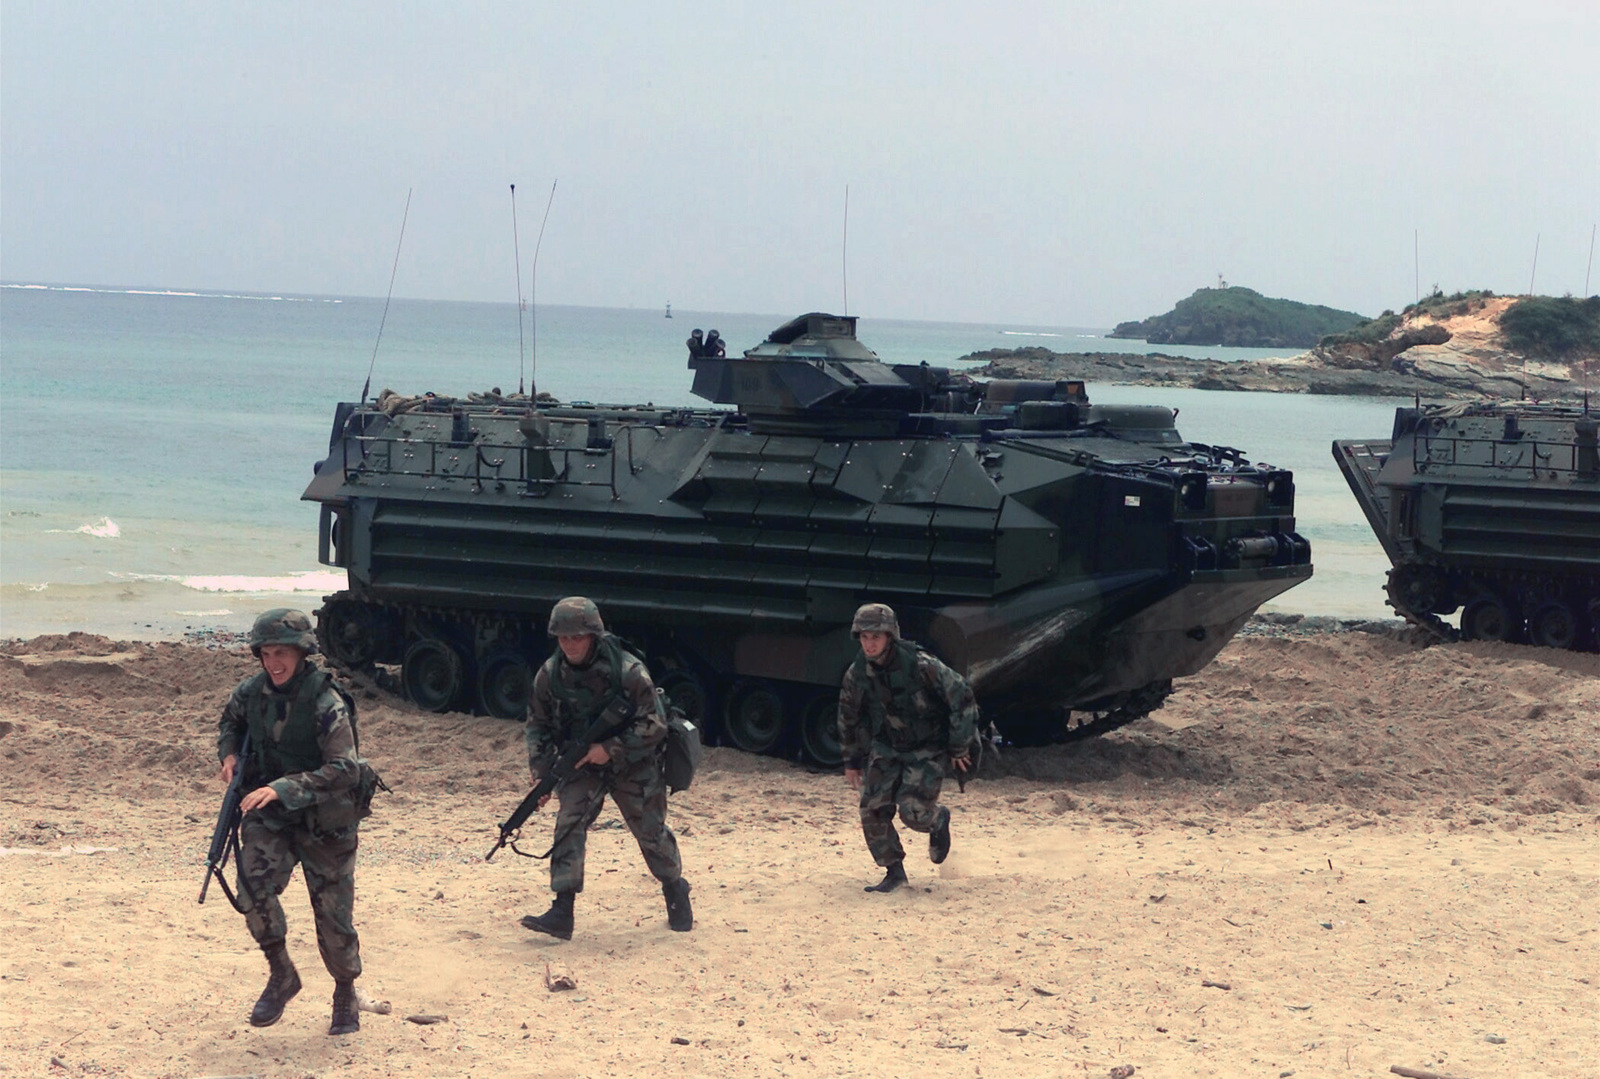 in-a-simulated-attack-assault-amphibian-vehicle-personnel-aavp7a1-storm-splash-8591df-1600.jpg